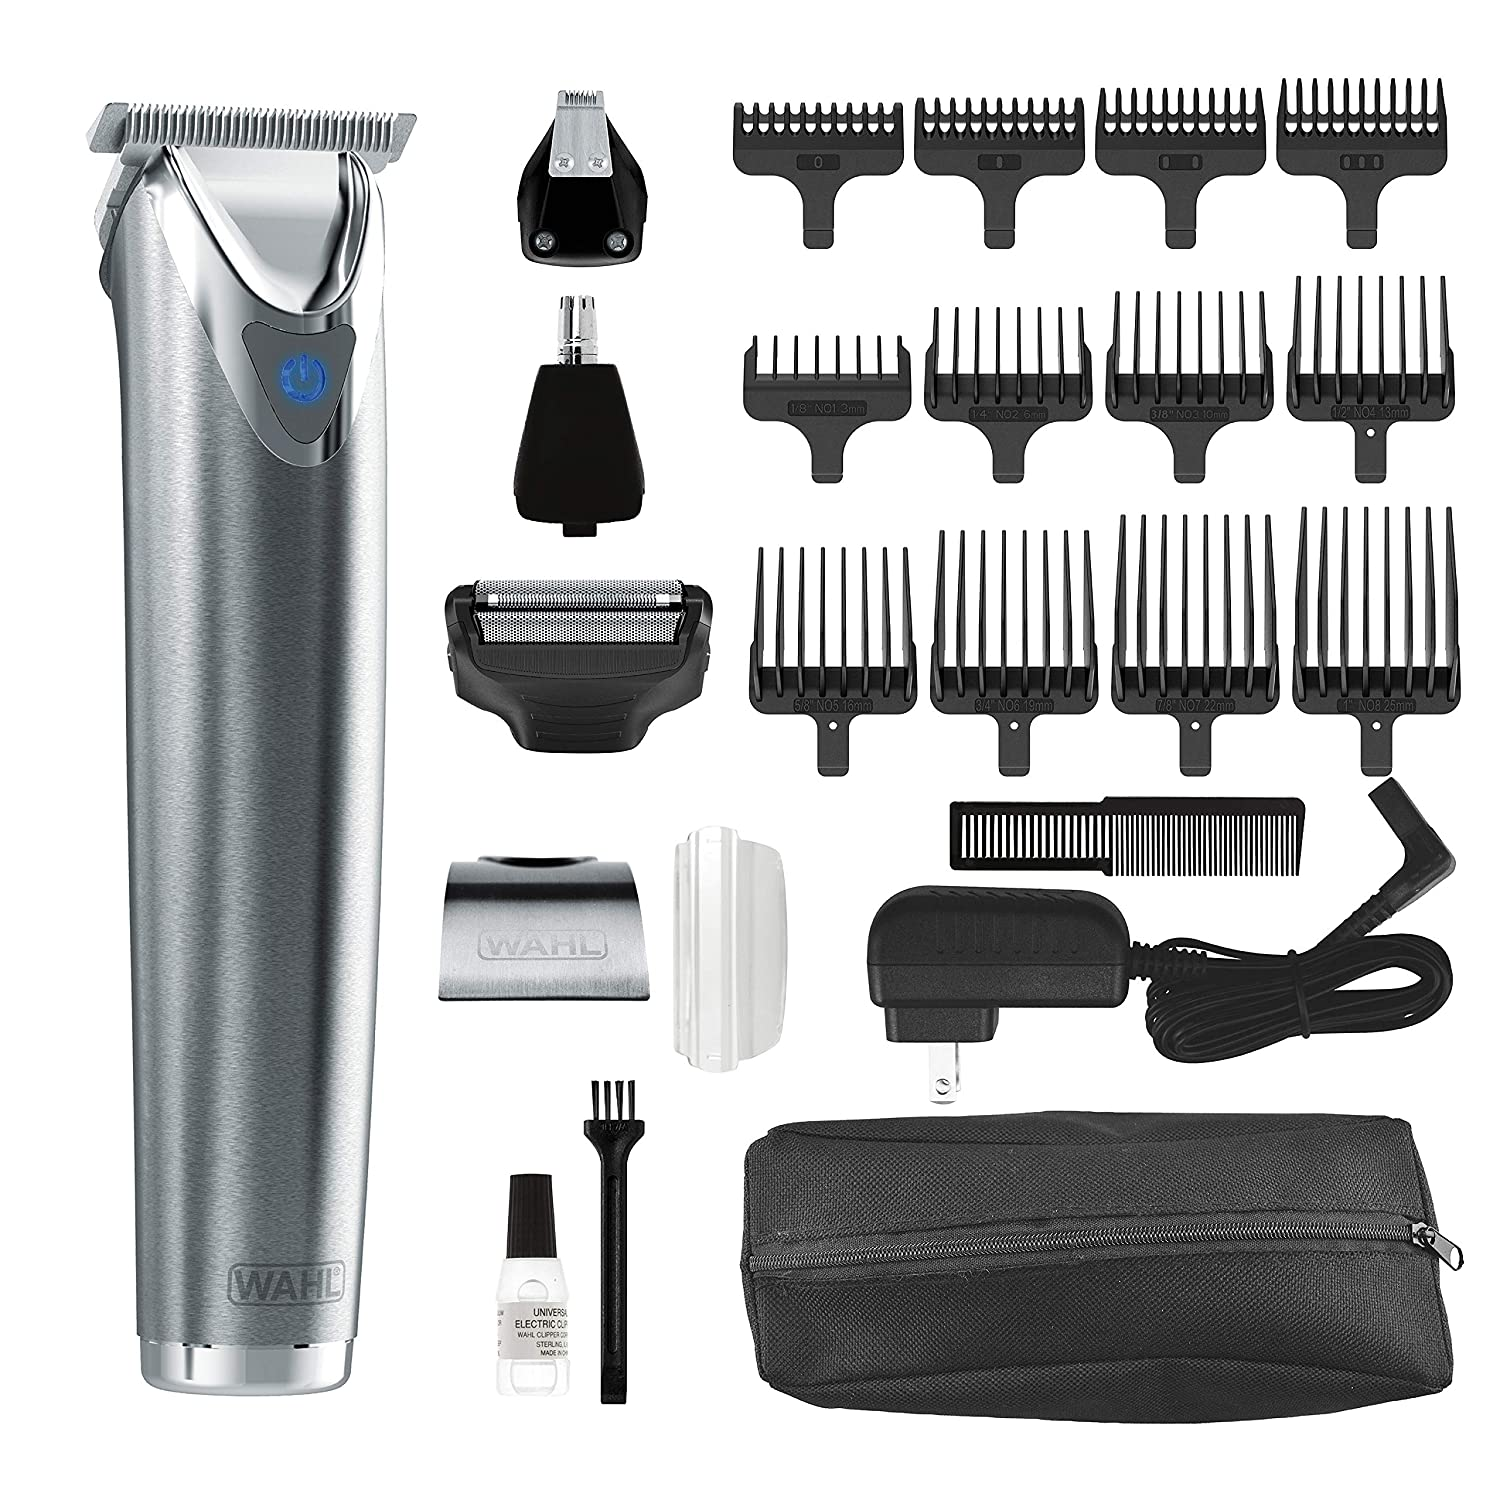 Wahl Stainless Steel Lithium Ion 2.0 Slate Beard Trimmer for Men – Electric Shaver, Nose Ear Trimmer, Rechargeable All in One Men s Grooming Kit – Model 9864SS